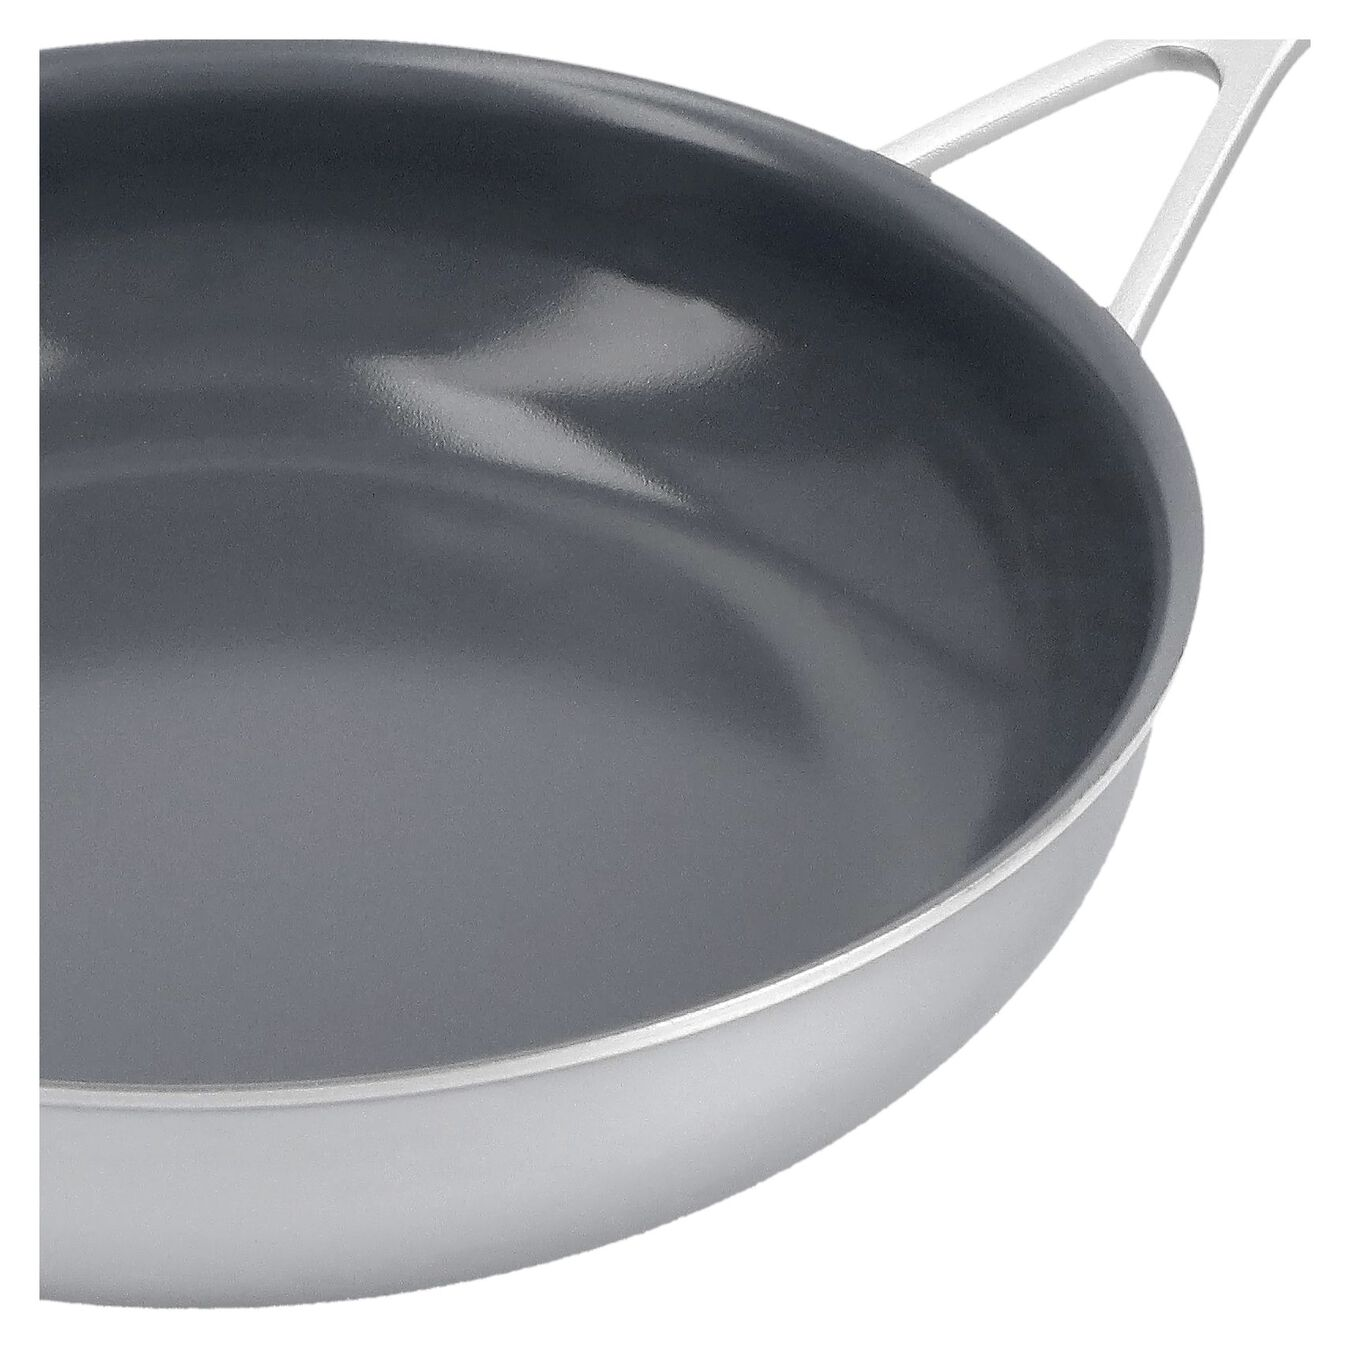 9.5-inch, 18/10 Stainless Steel, Non-stick, Ceramic, Frying pan,,large 5